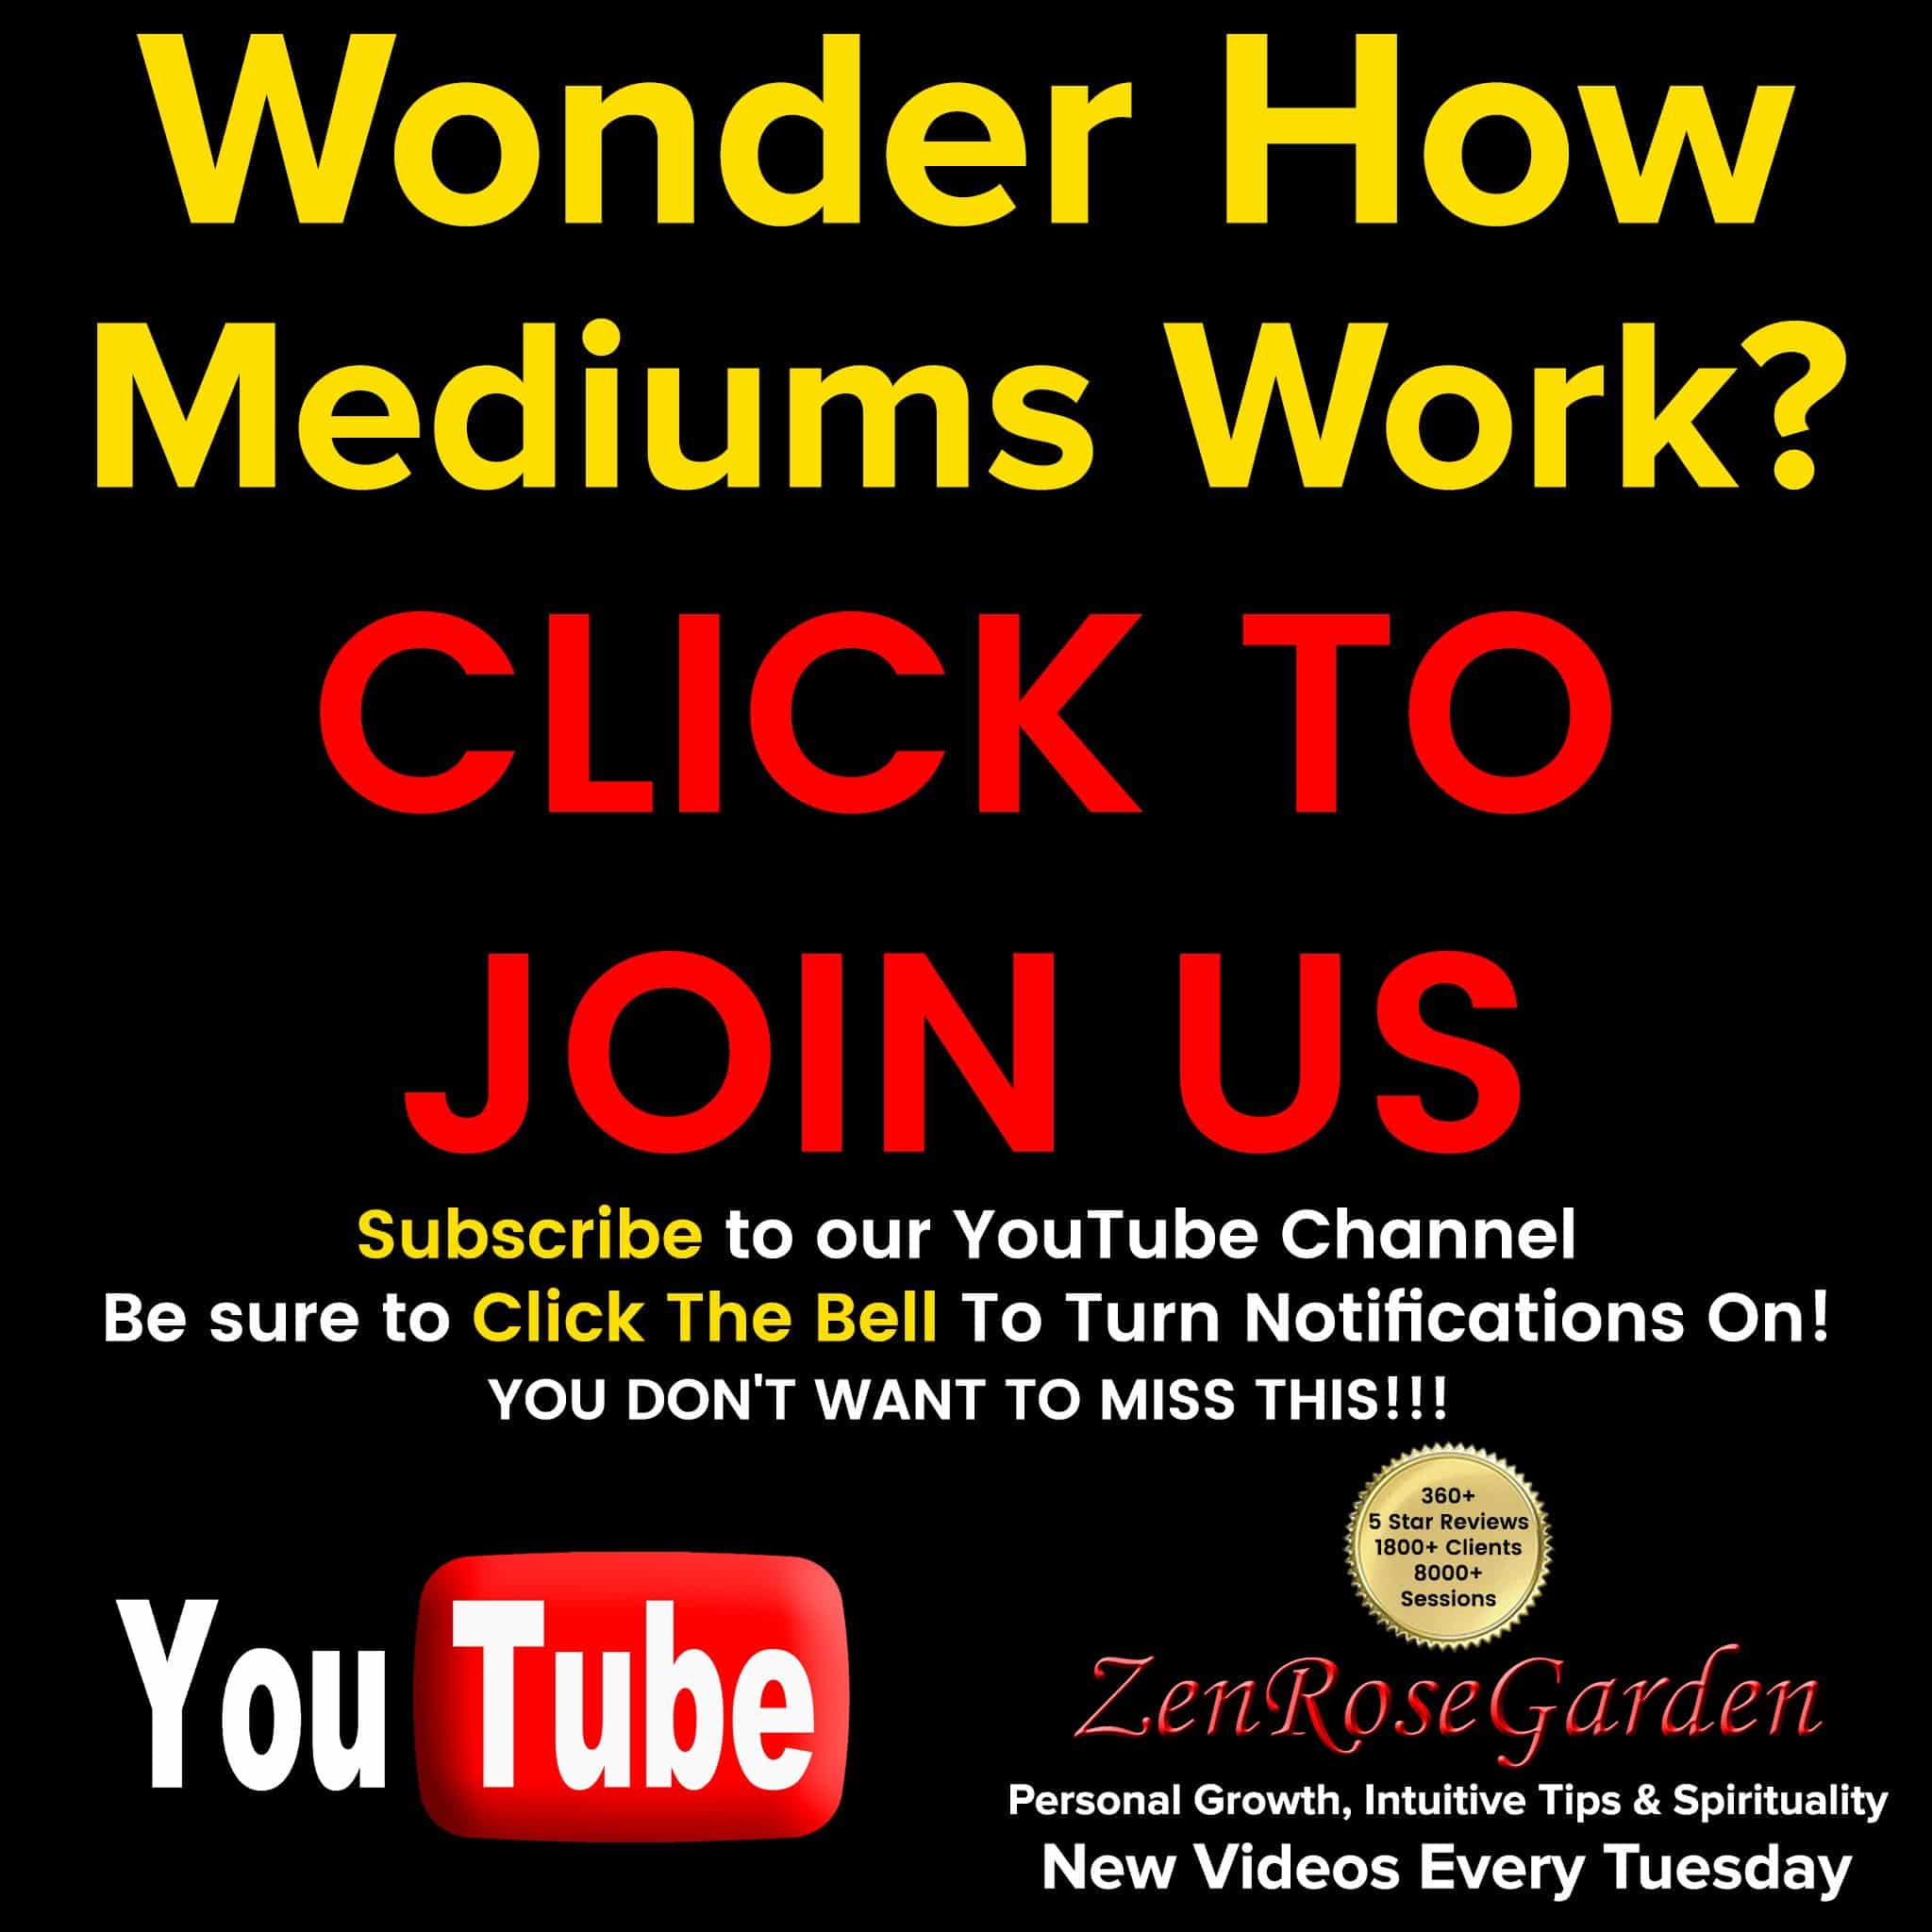 Mediumship Training How Do Mediums Work, Mediumship Training, How Do Mediums Work, mediumship, how to be psychic, intuition, trust your intuition, developing intuition, psychic dreams, psychic protection, spiritual awakening, spiritual gifts, psychic powers, psychic abilities, psychic development, spiritual symbols, what is a psychic medium, how do mediums work, spiritual healing, spiritualism, what is a medium, spirit world, spirit realm, spiritual guidance, spirit possession, spirit guardians, how to communicate with spirits, spirit guides, discernment of spirits, what is a spirit, how to contact spirits, what is a spirit guide, spiritual protection, spiritual messages, spiritual dimensions, Zen Rose Garden,